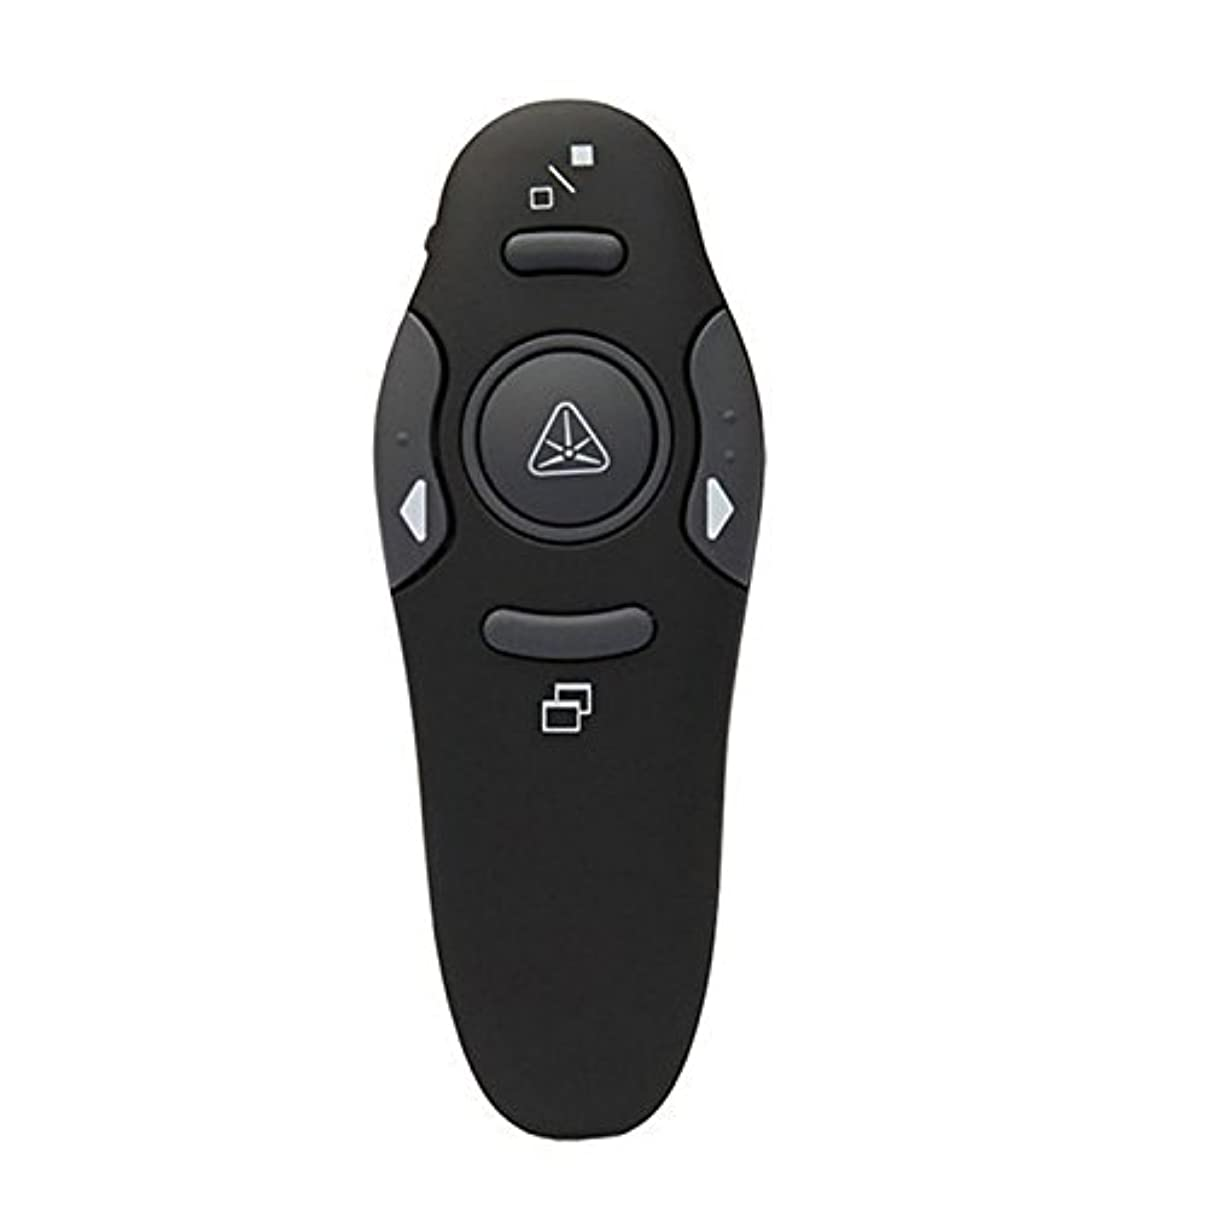 Refresh Your Life 2.4GHz Wireless Presenter USB Remote Control Presentation Mouse Laser Pointe H52